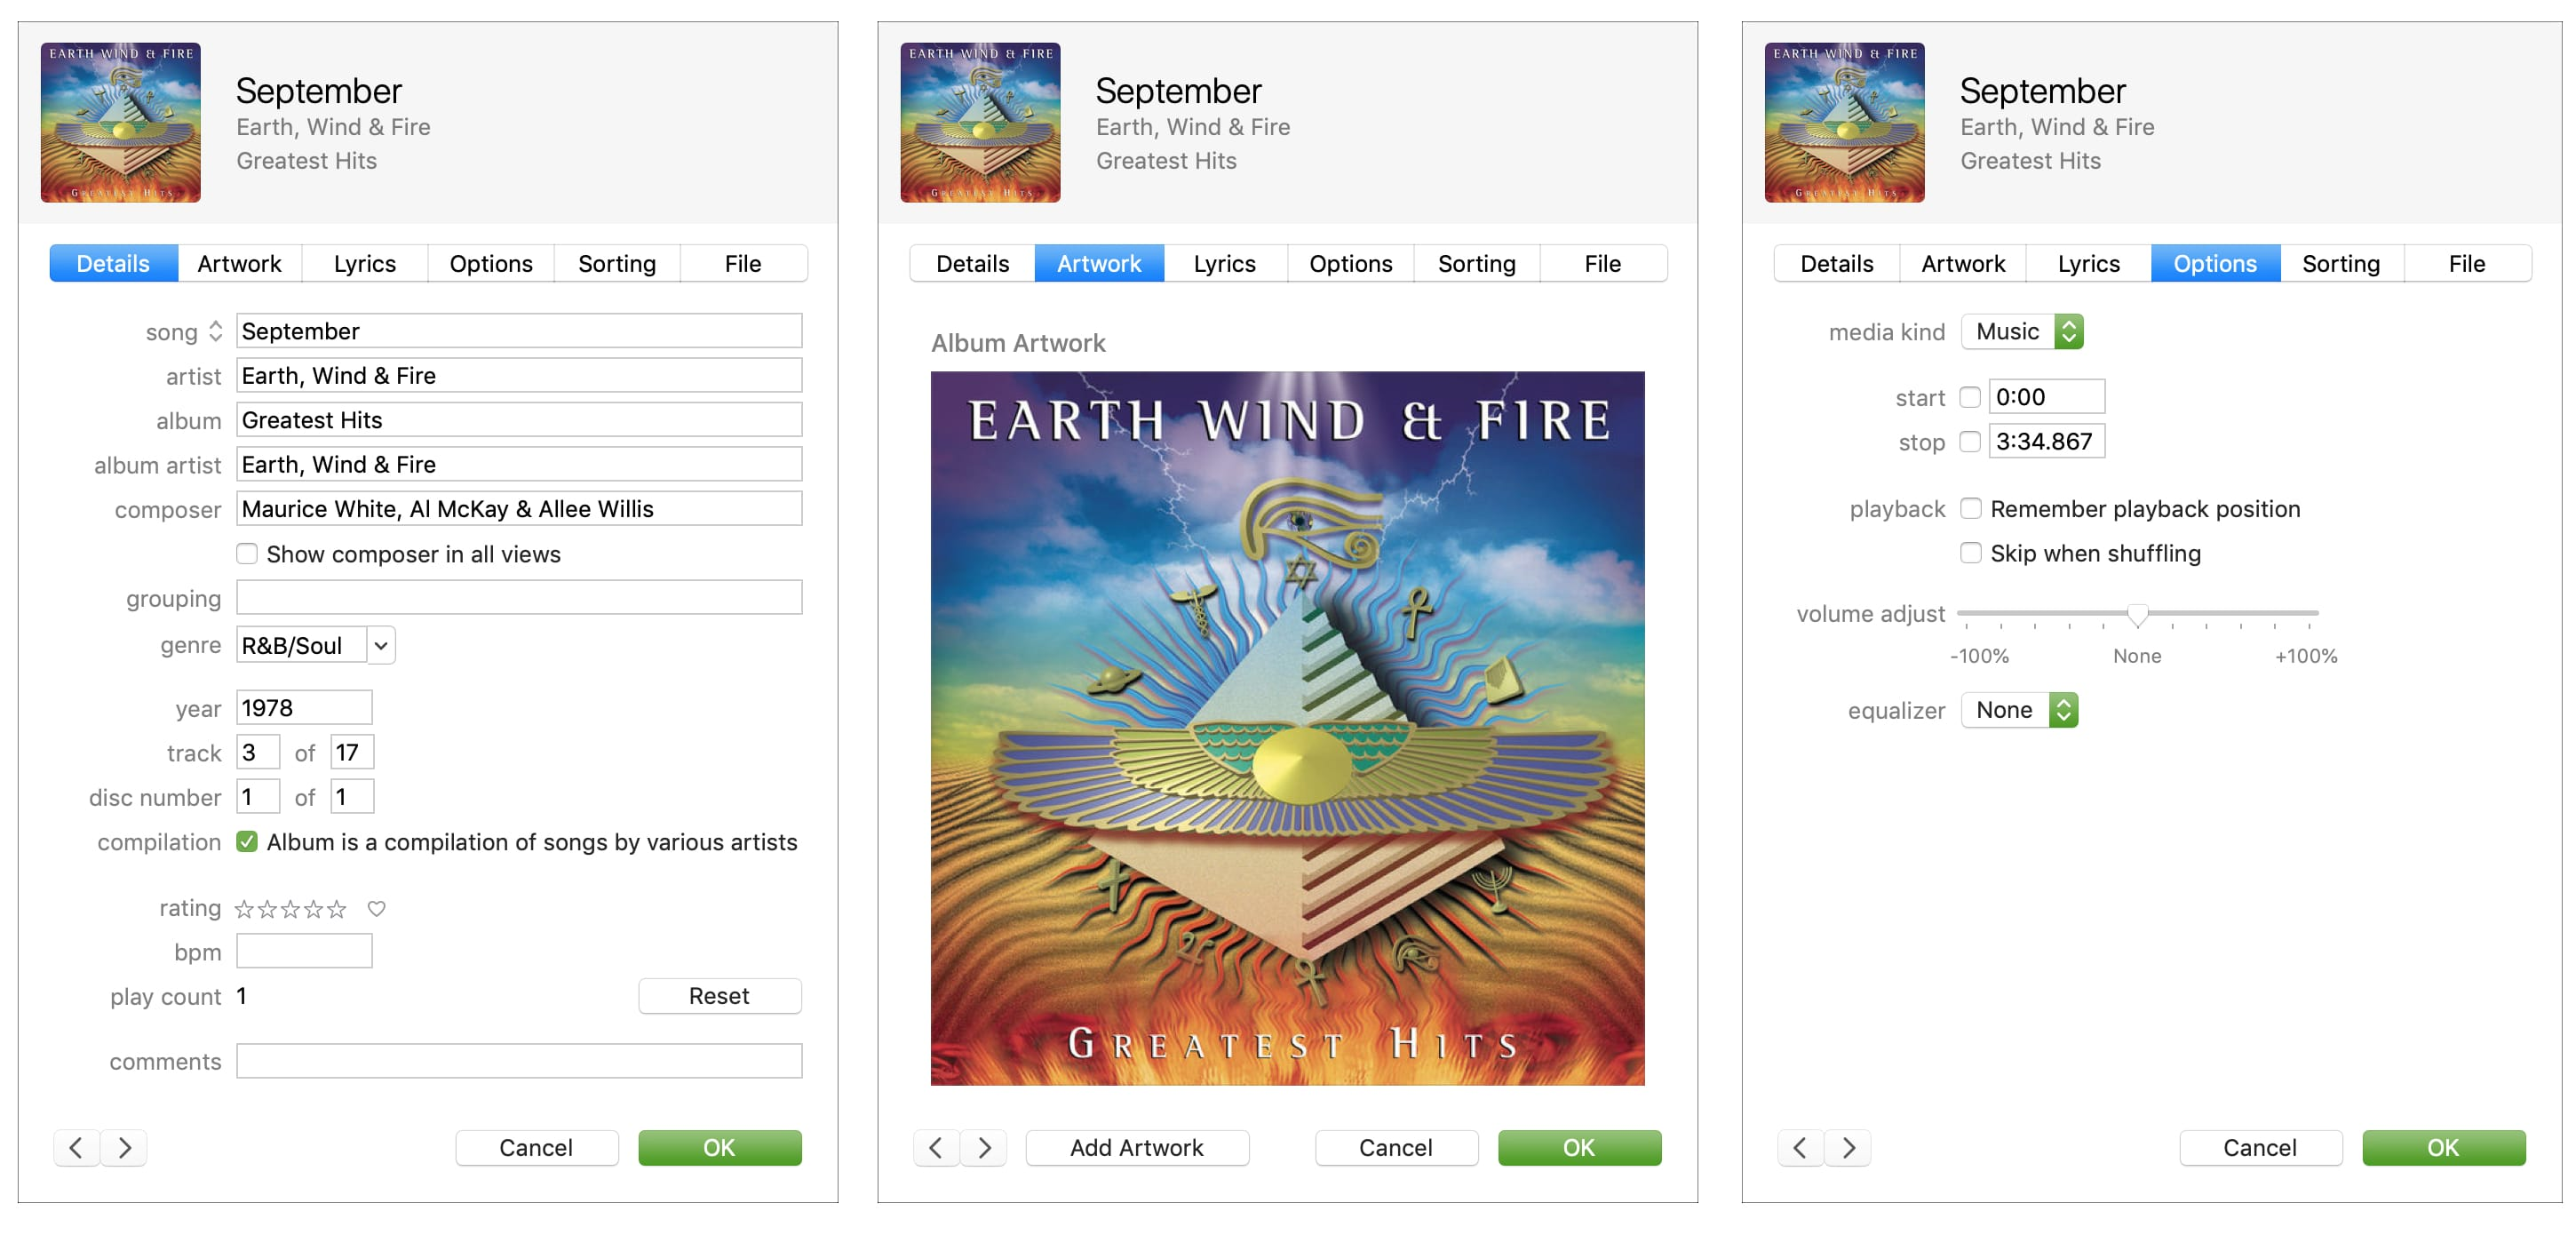 Song Info in iTunes - Earth Wind and Fire